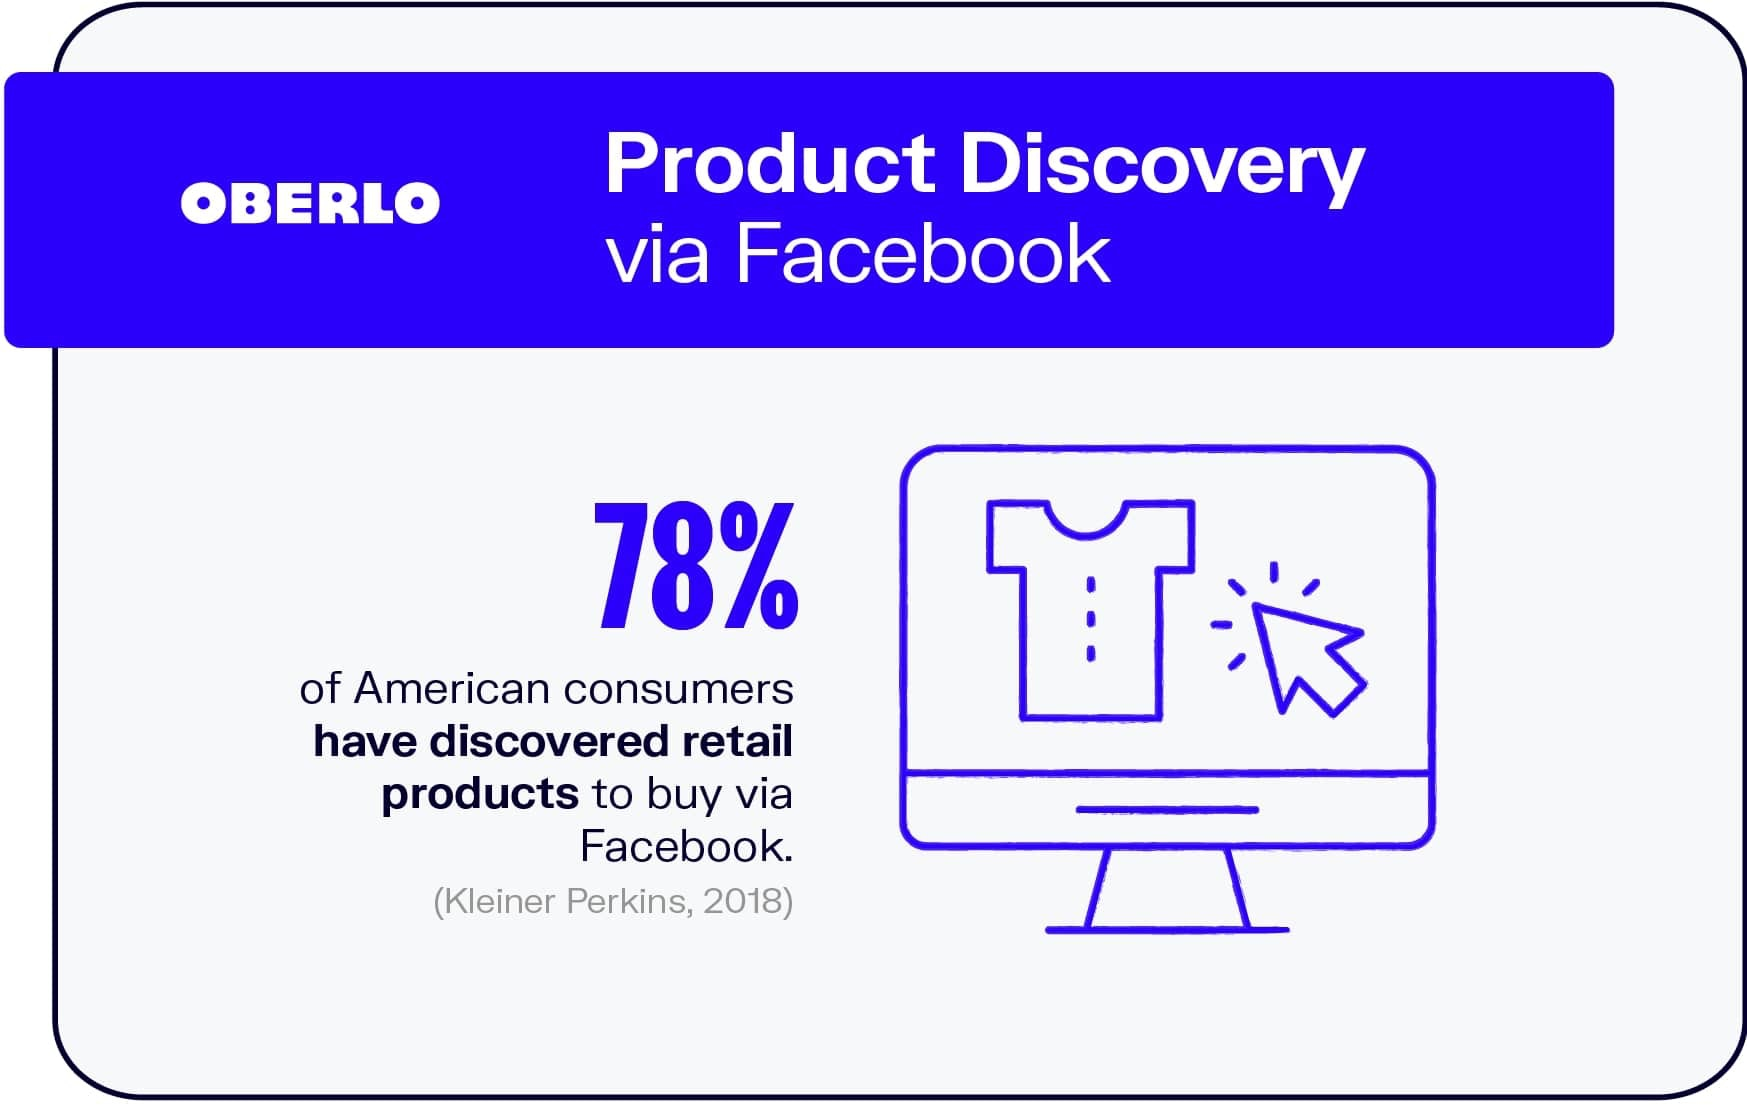 Products Discovery via Facebook